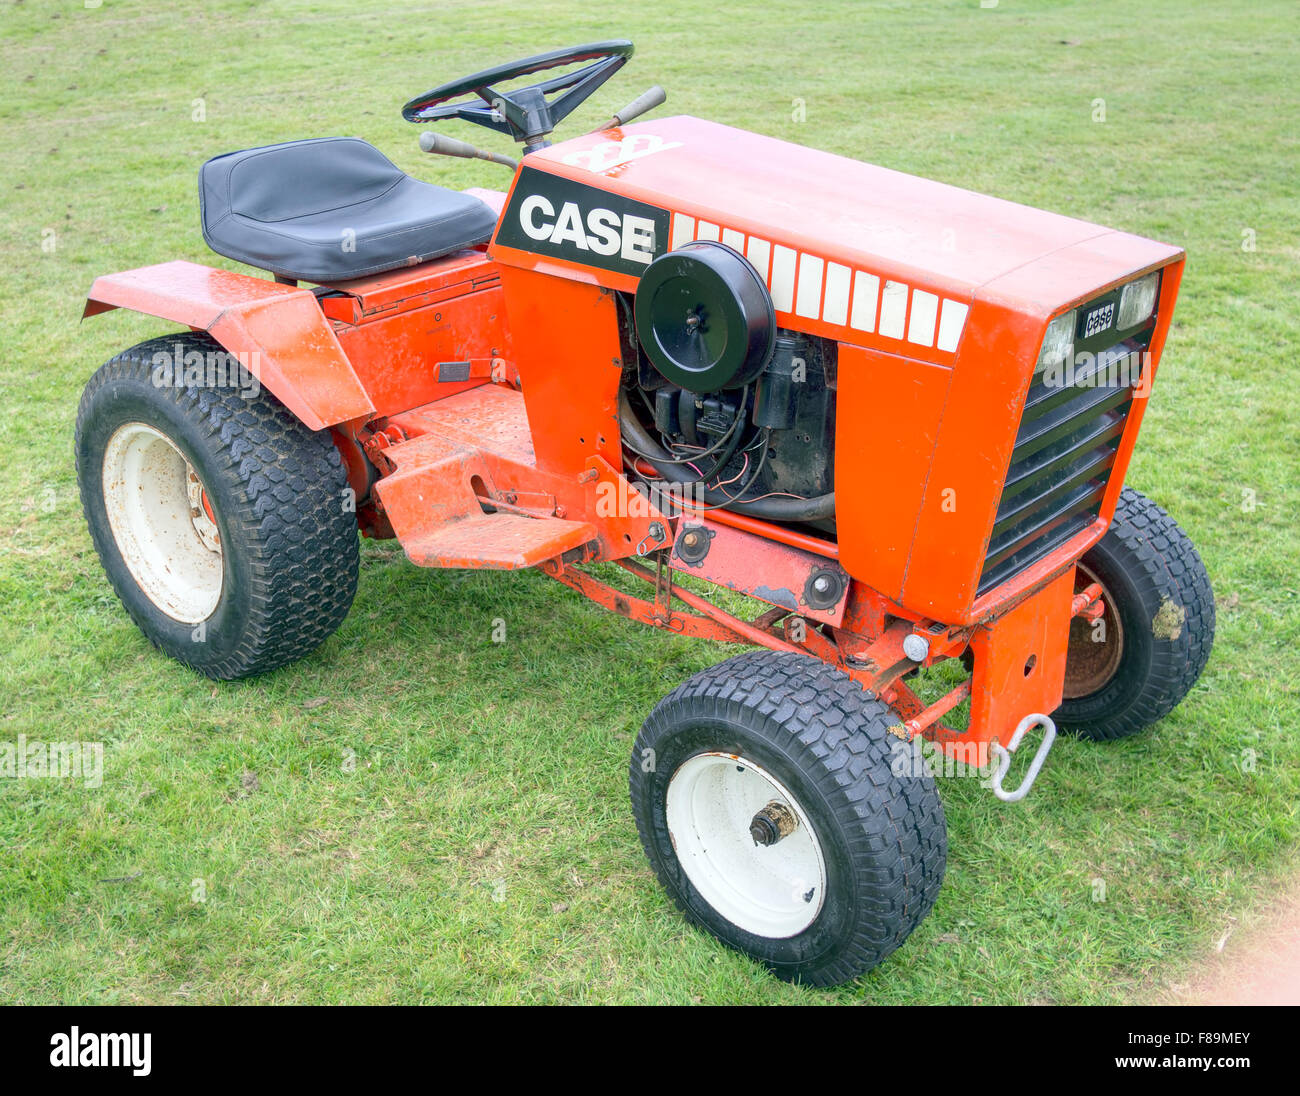 J i case 222 garden tractor outdoors for Garden machinery for sale